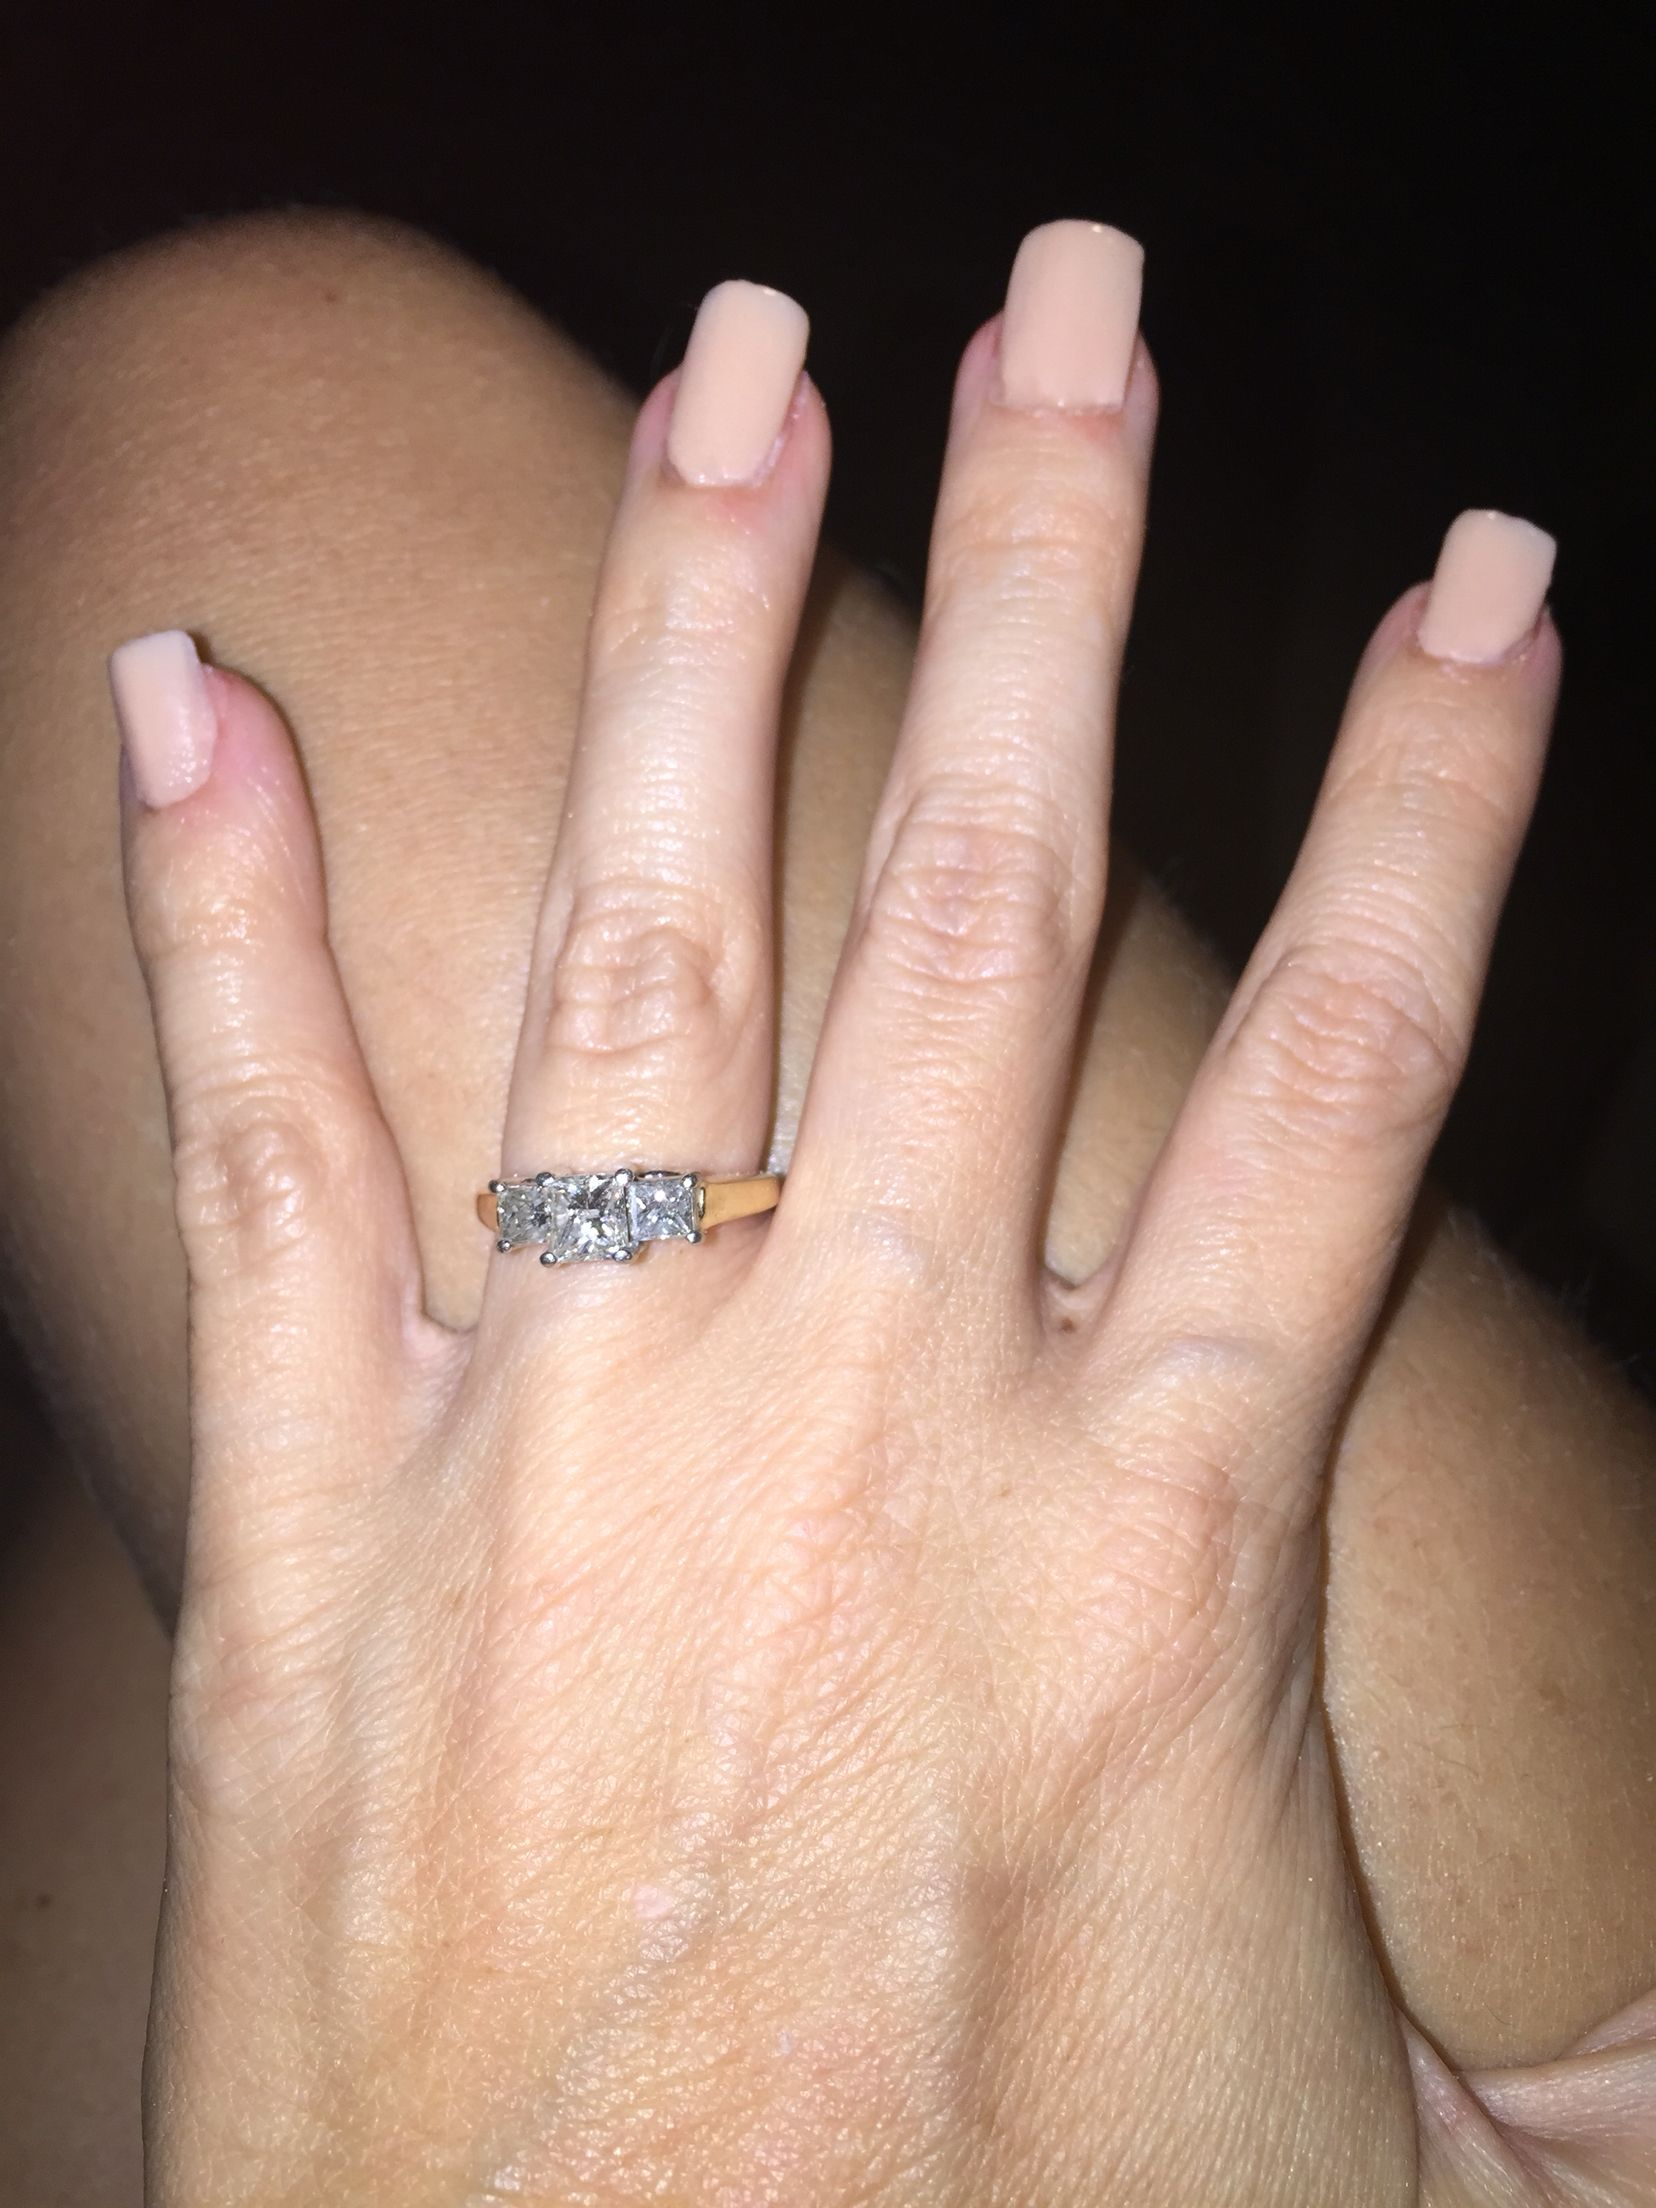 My engagement ring...Love it!